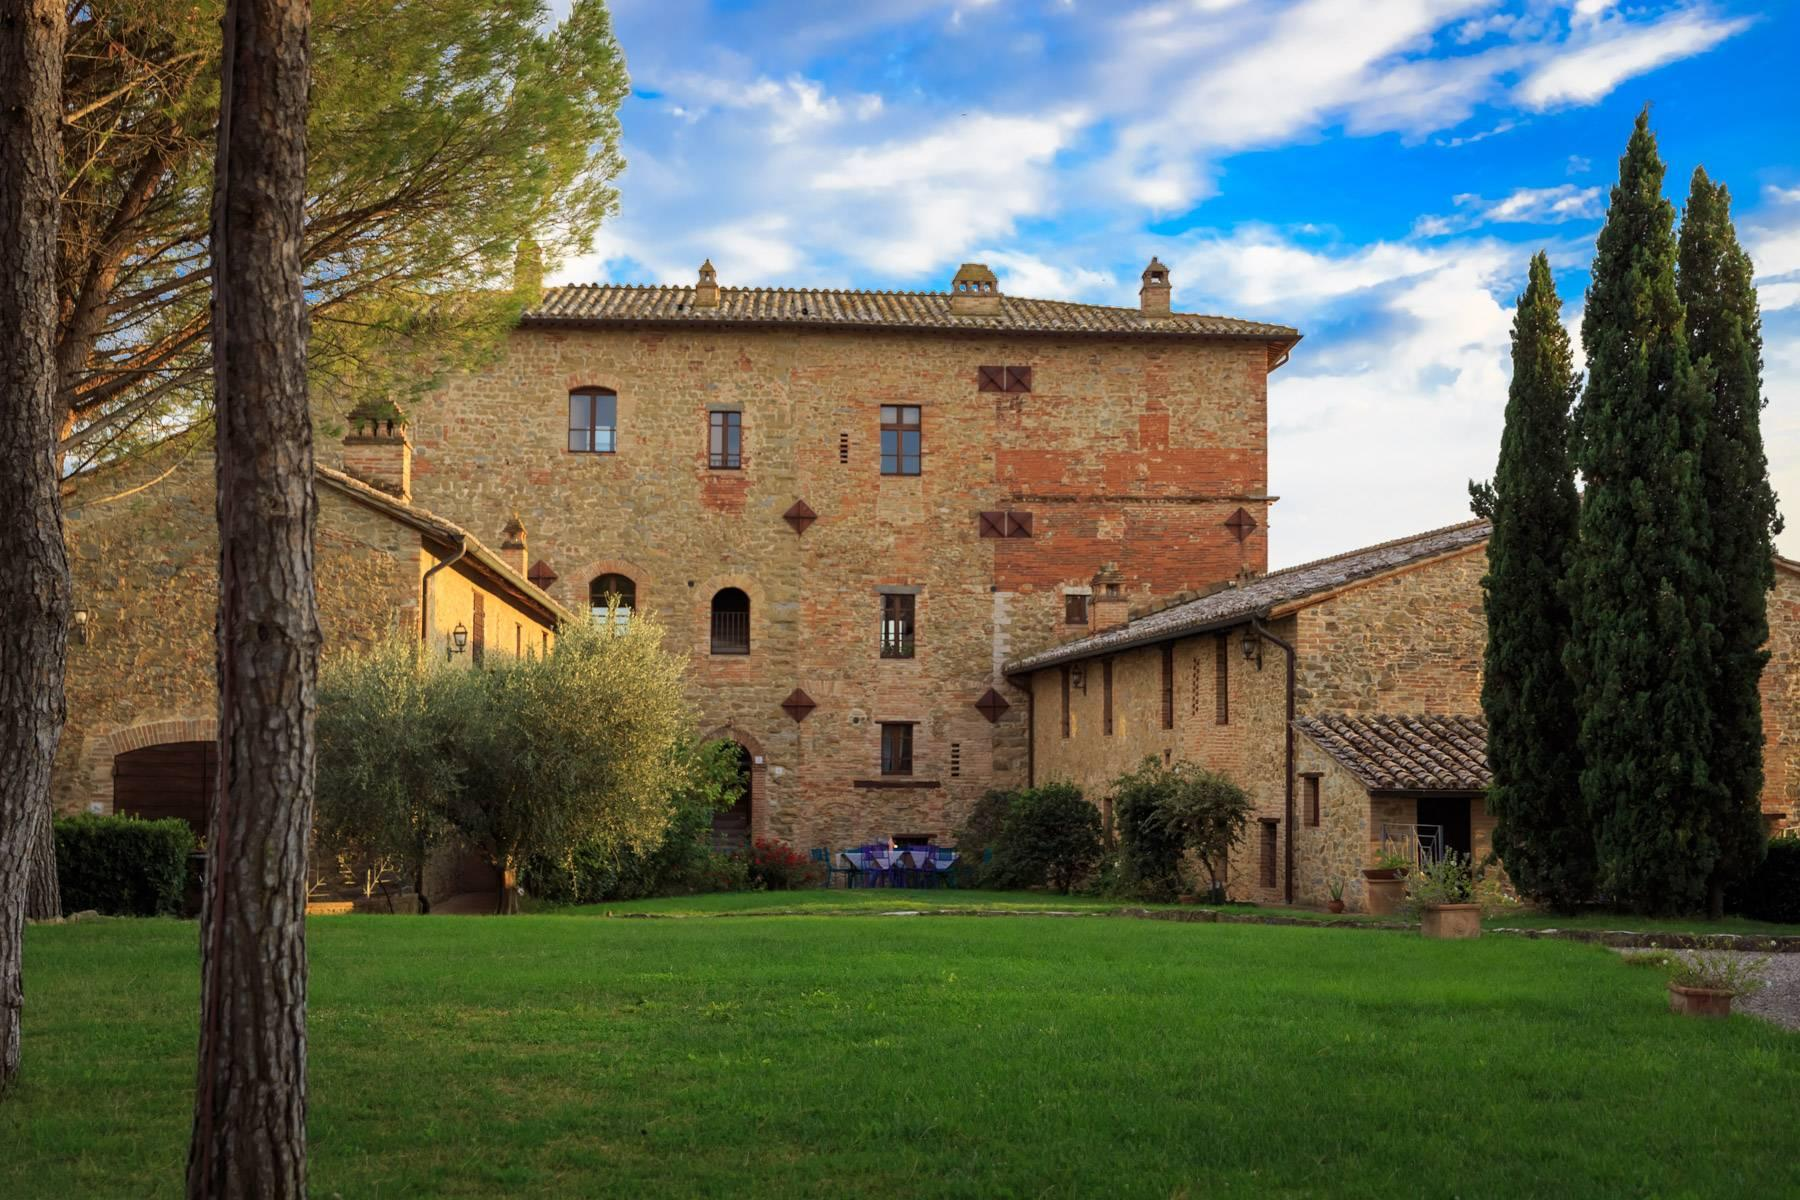 Magnificent castle in the heart of Umbria - 30